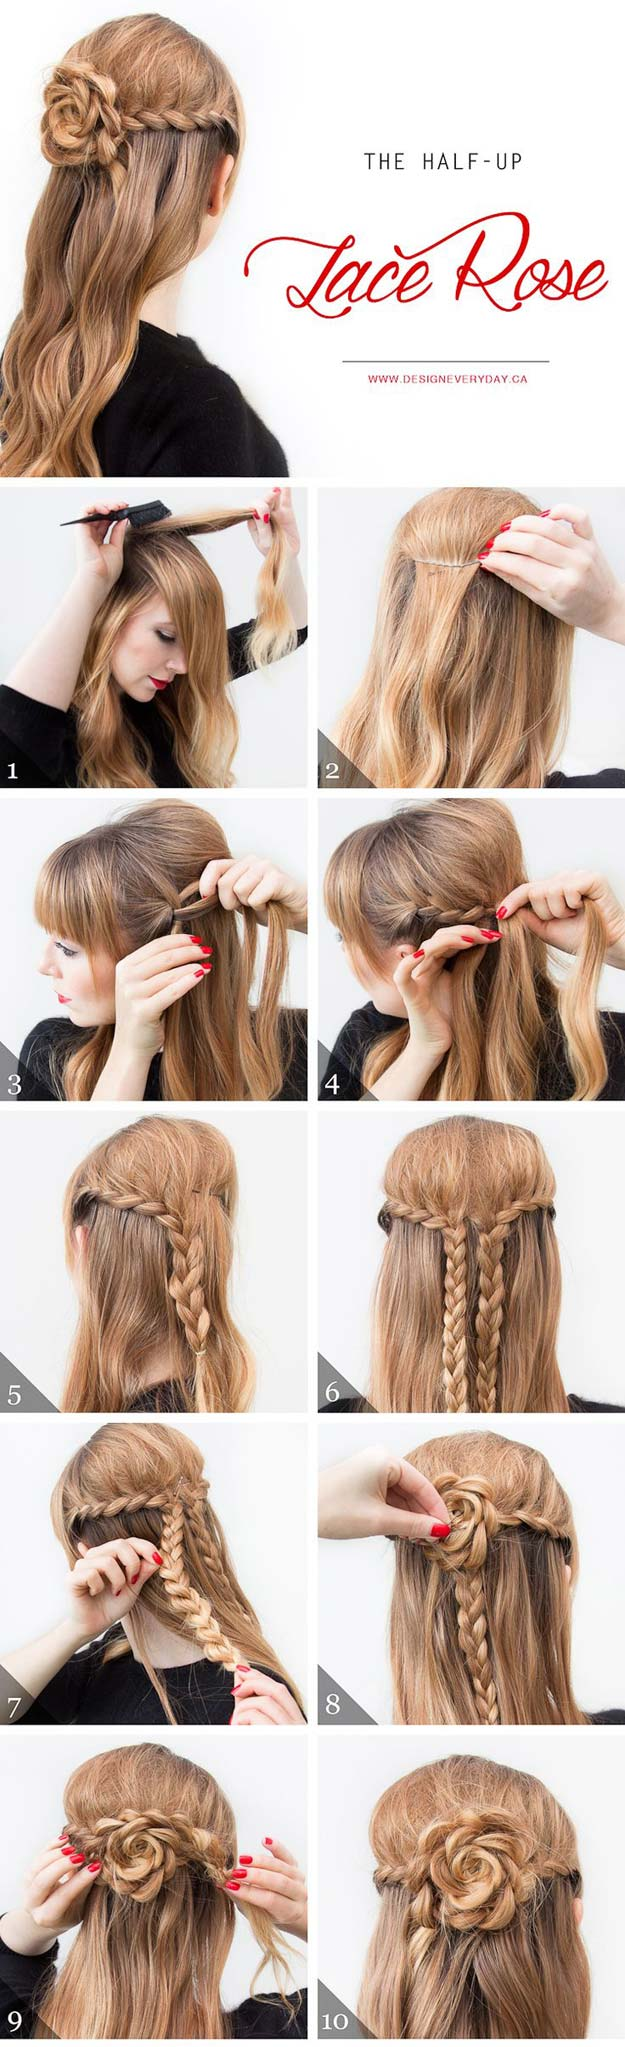 Diy Hairstyles best hairstyles for long hair half up half down hairstyles step by step tutorials Cool And Easy Diy Hairstyles The Half Up Lace Rose Quick And Easy Ideas